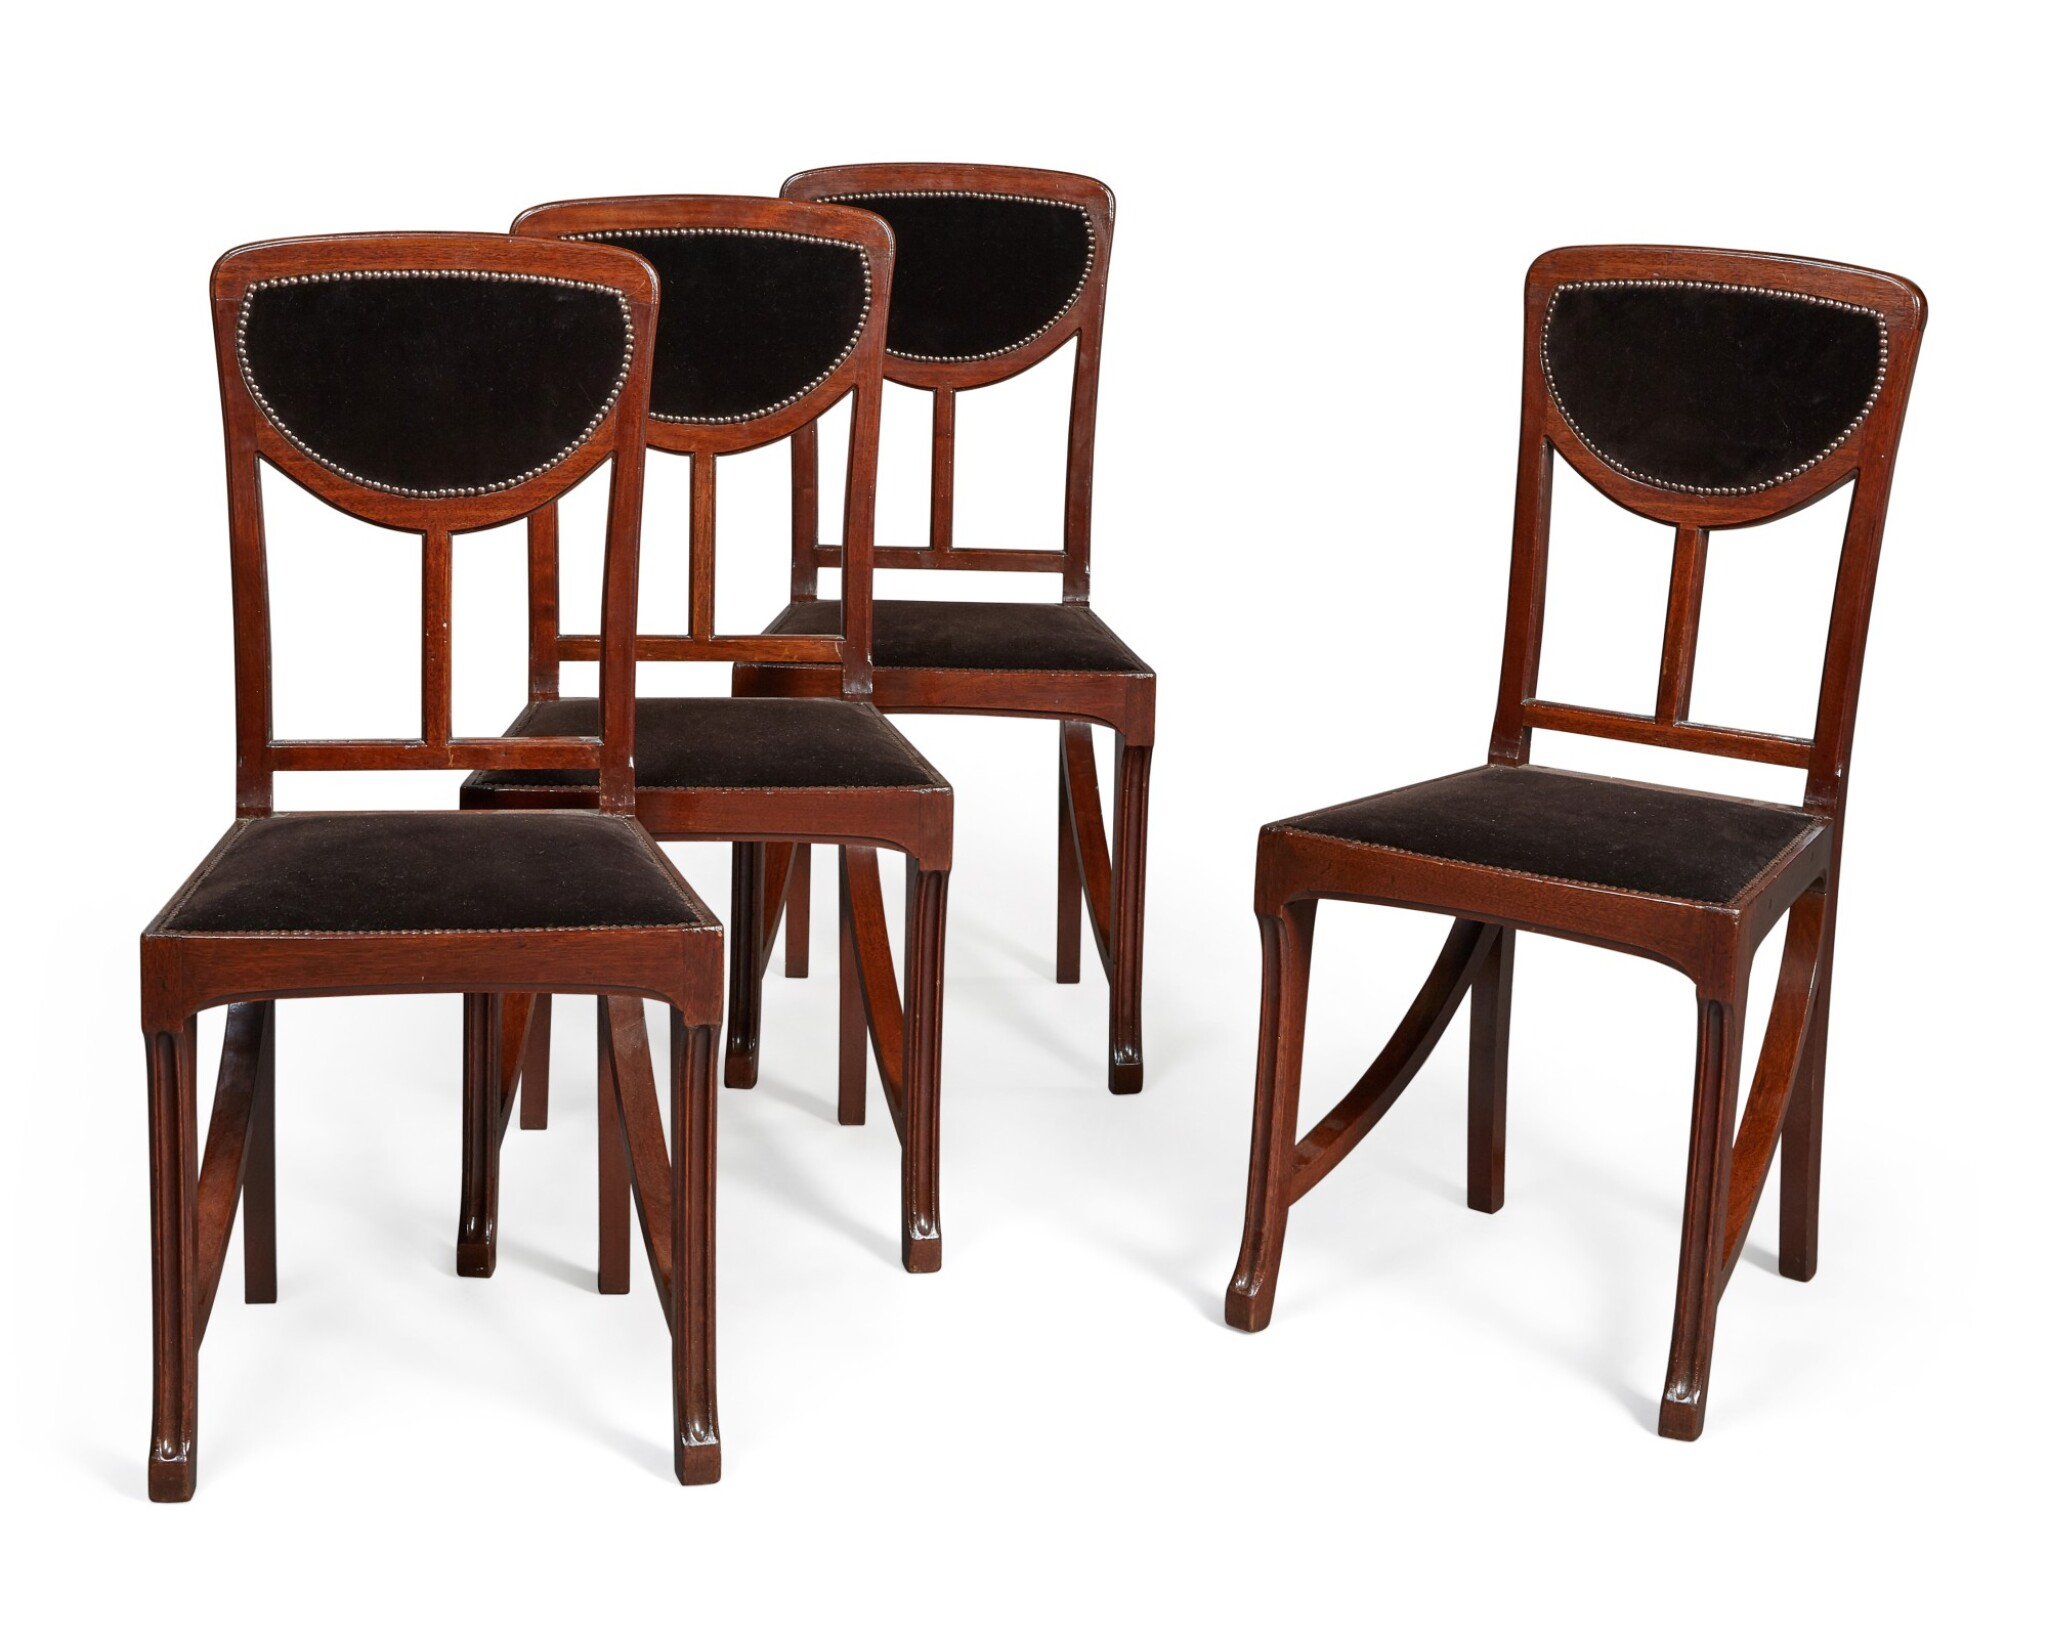 View full screen - View 1 of Lot 160. A SET OF FOUR ART NOUVEAU MAHOGANY SIDE CHAIRS, CIRCA 1900, ATTRIBUTED TO EDOUARD DIOT, PROBABLY MADE BY MAISON DIOT OF PARIS.